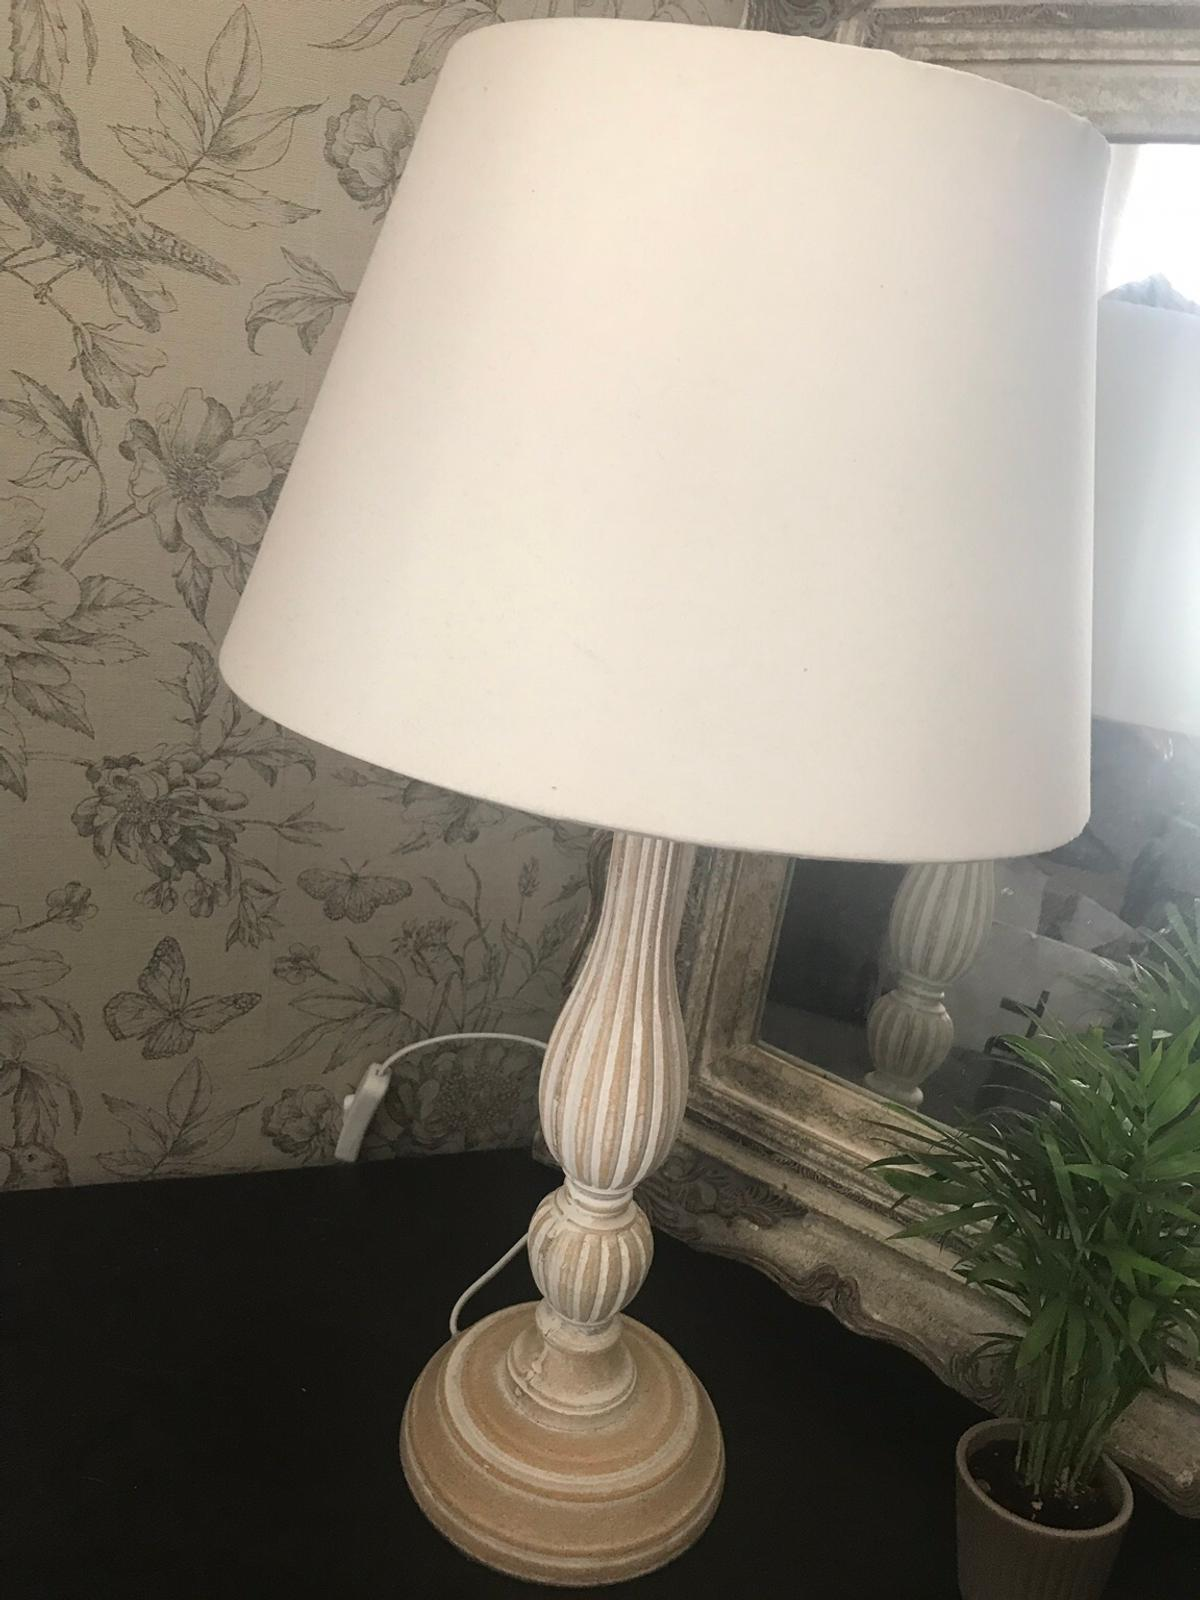 Zara Home Lampe Shabby Chic In 22765 Altona Nord For 19 00 For